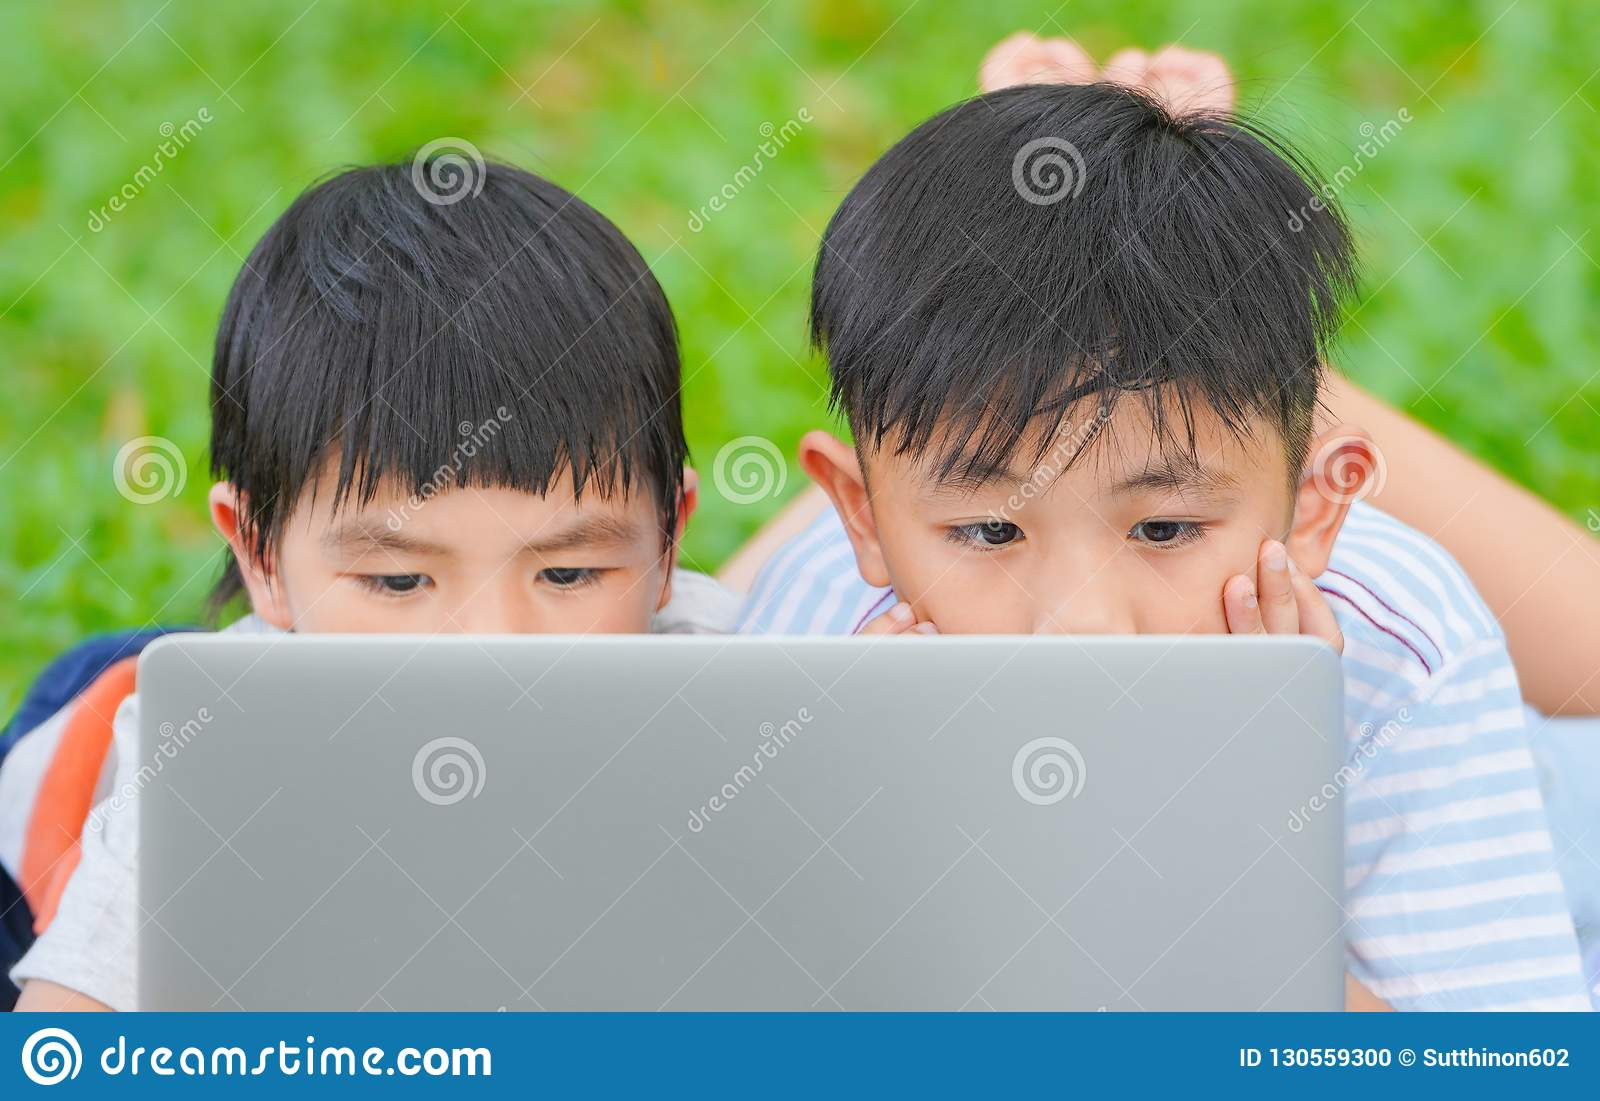 Kids using laptop, Summer school concept, Asian children are playing laptop computer in the park.